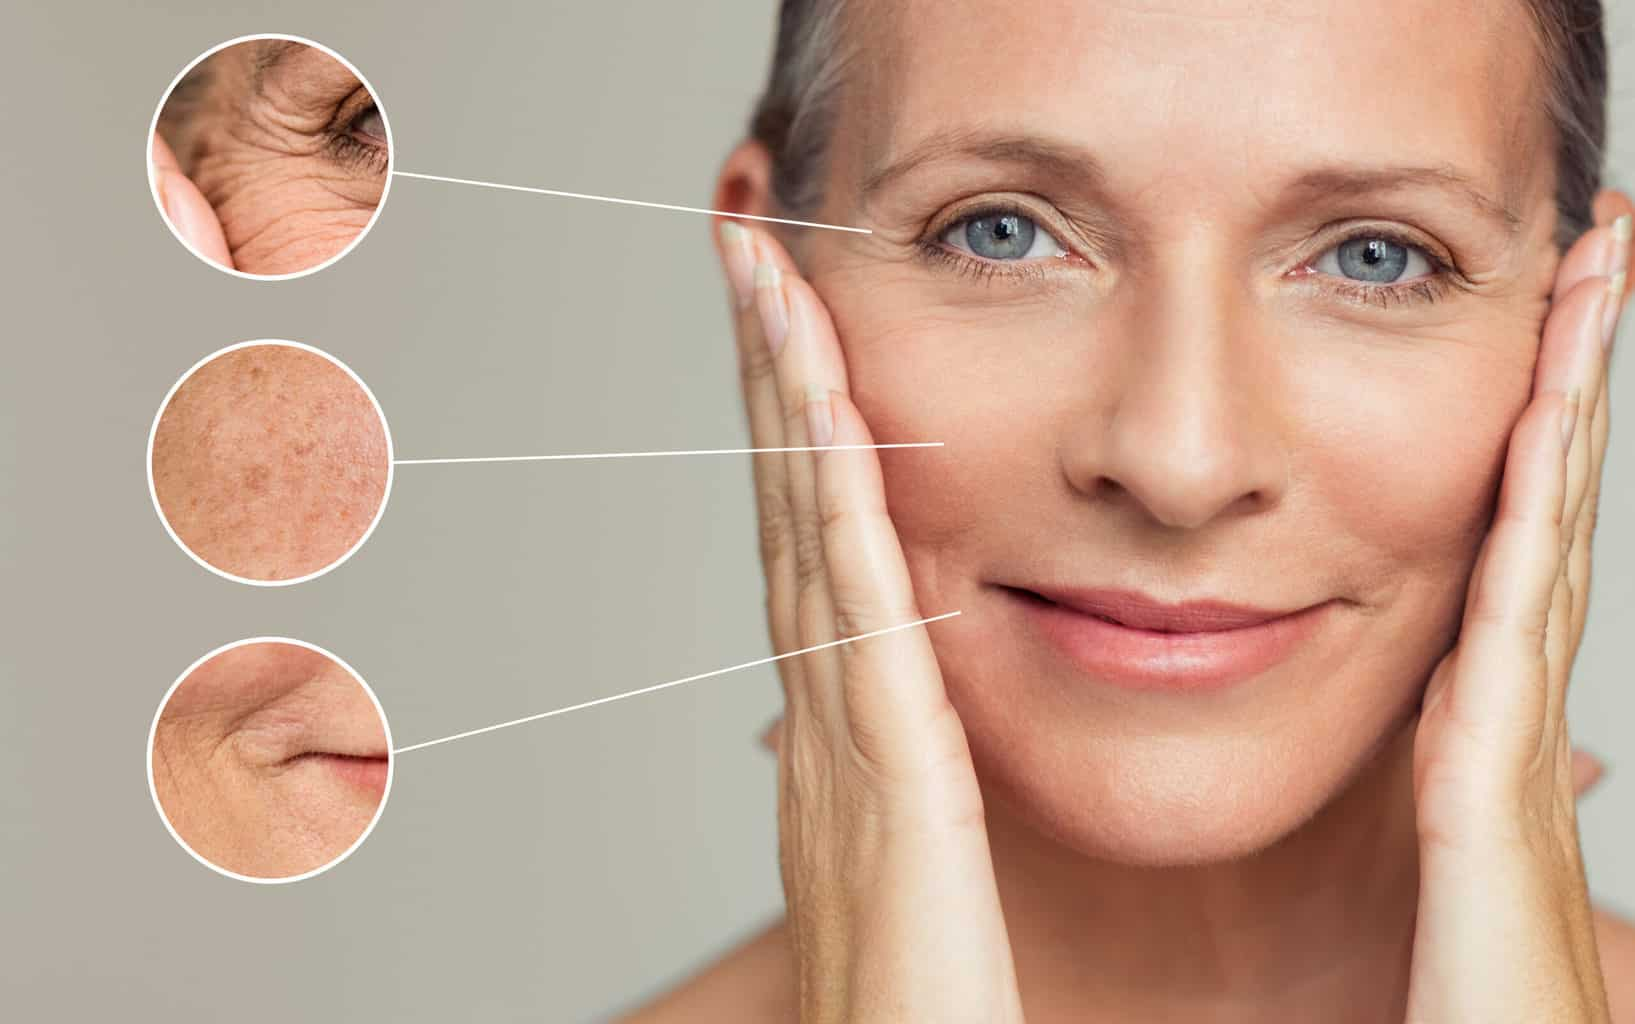 With these simple skin care routine steps, protect your skin and prevent further damage.